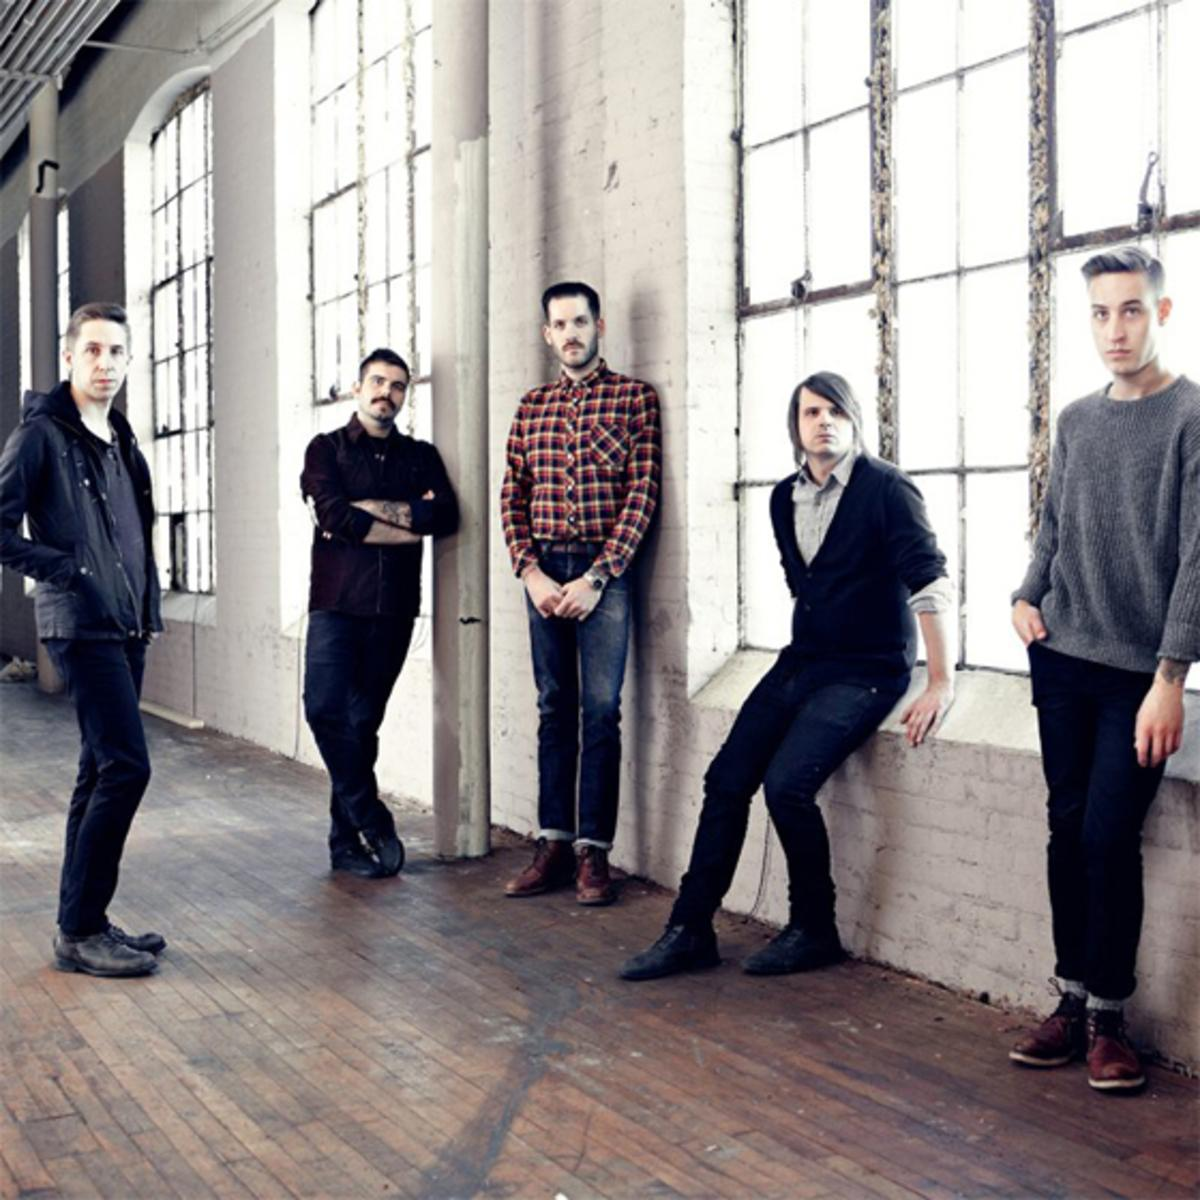 Vídeo: Silverstein (@silverstein) – 'Heaven, Hell and Purgatory' http://t.co/Bfnk8nfTWD /cc @riserecords http://t.co/cTFXT8cptq